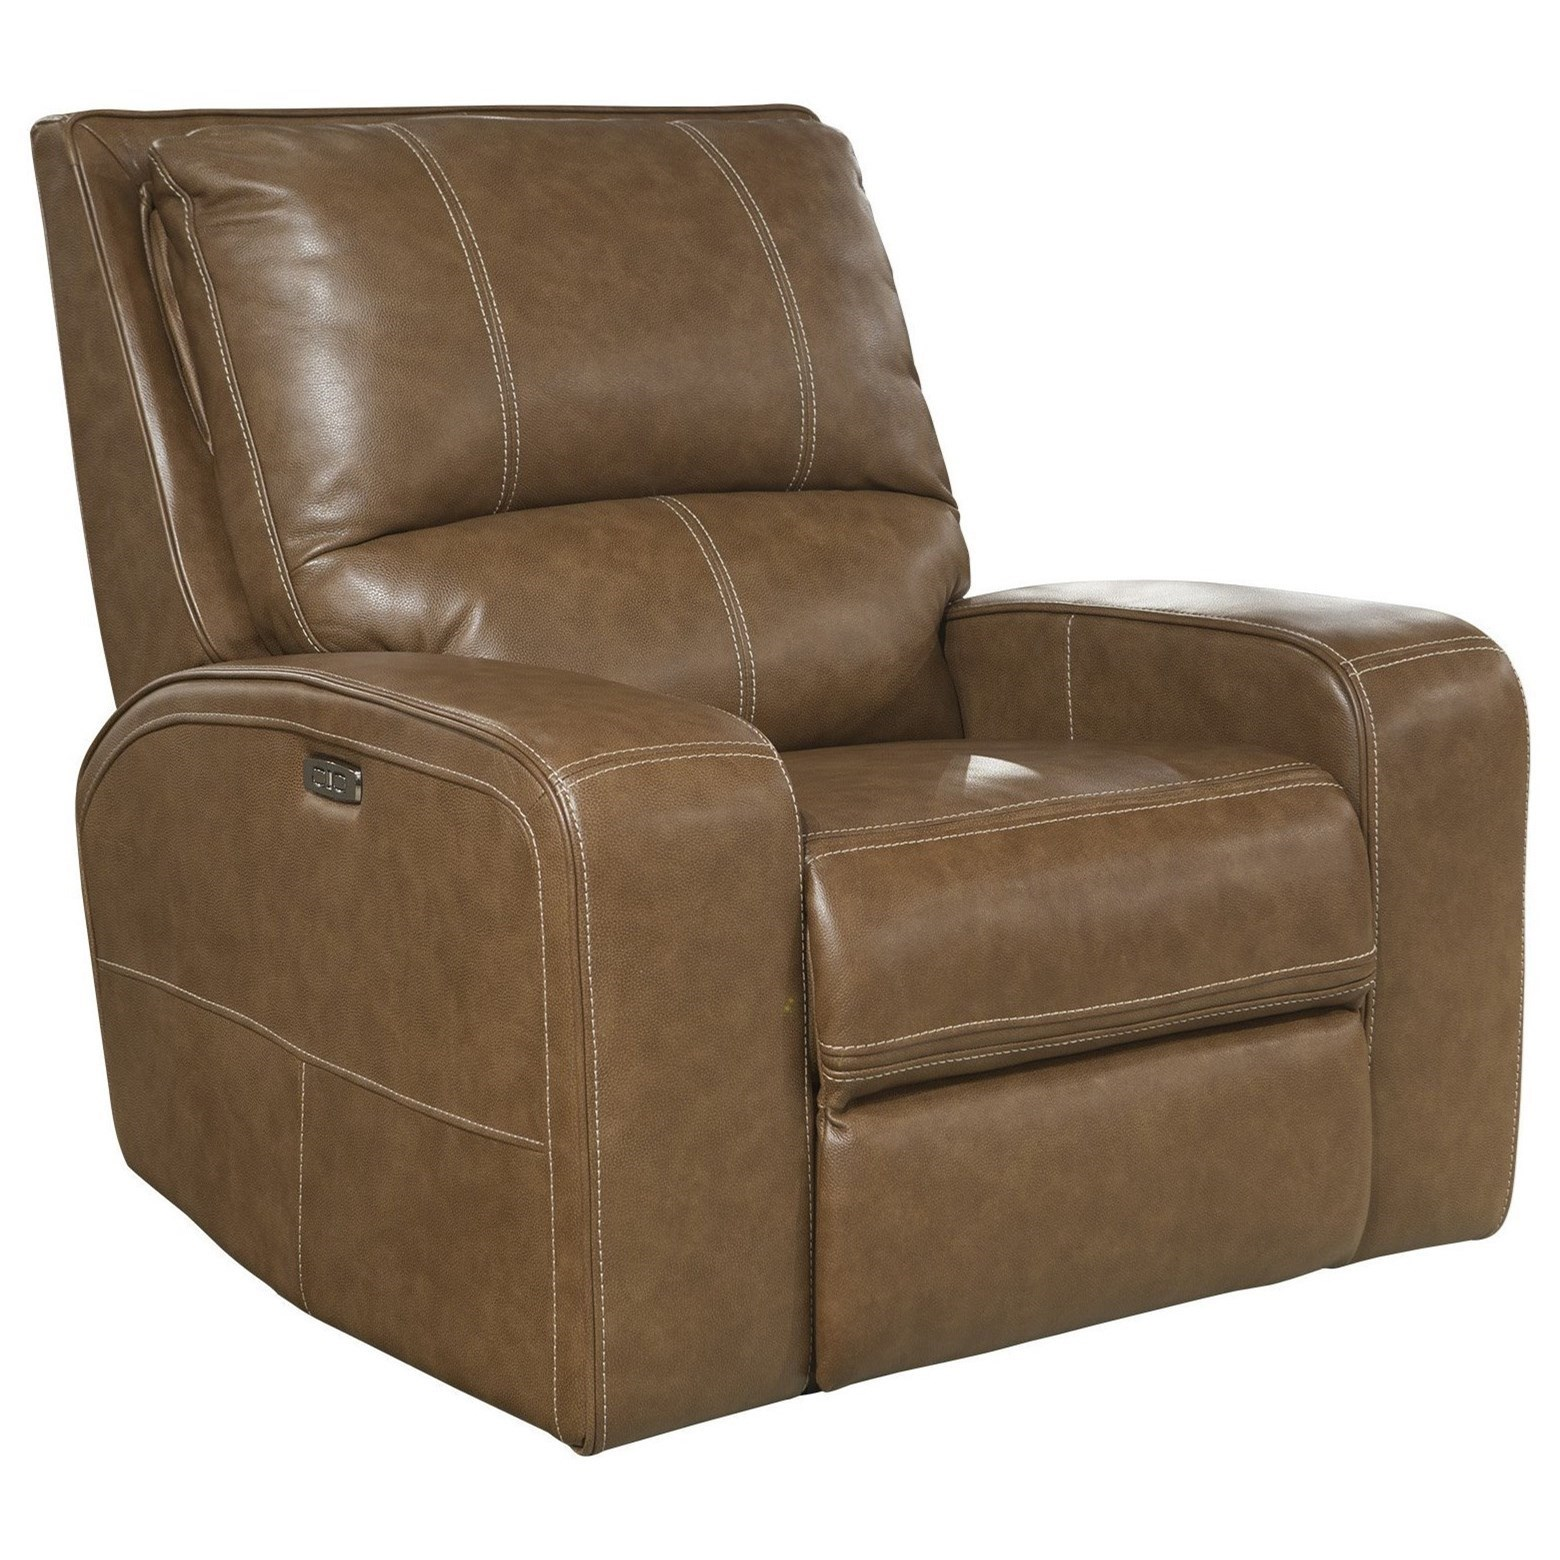 Parker Living SwiftPower Recliner ...